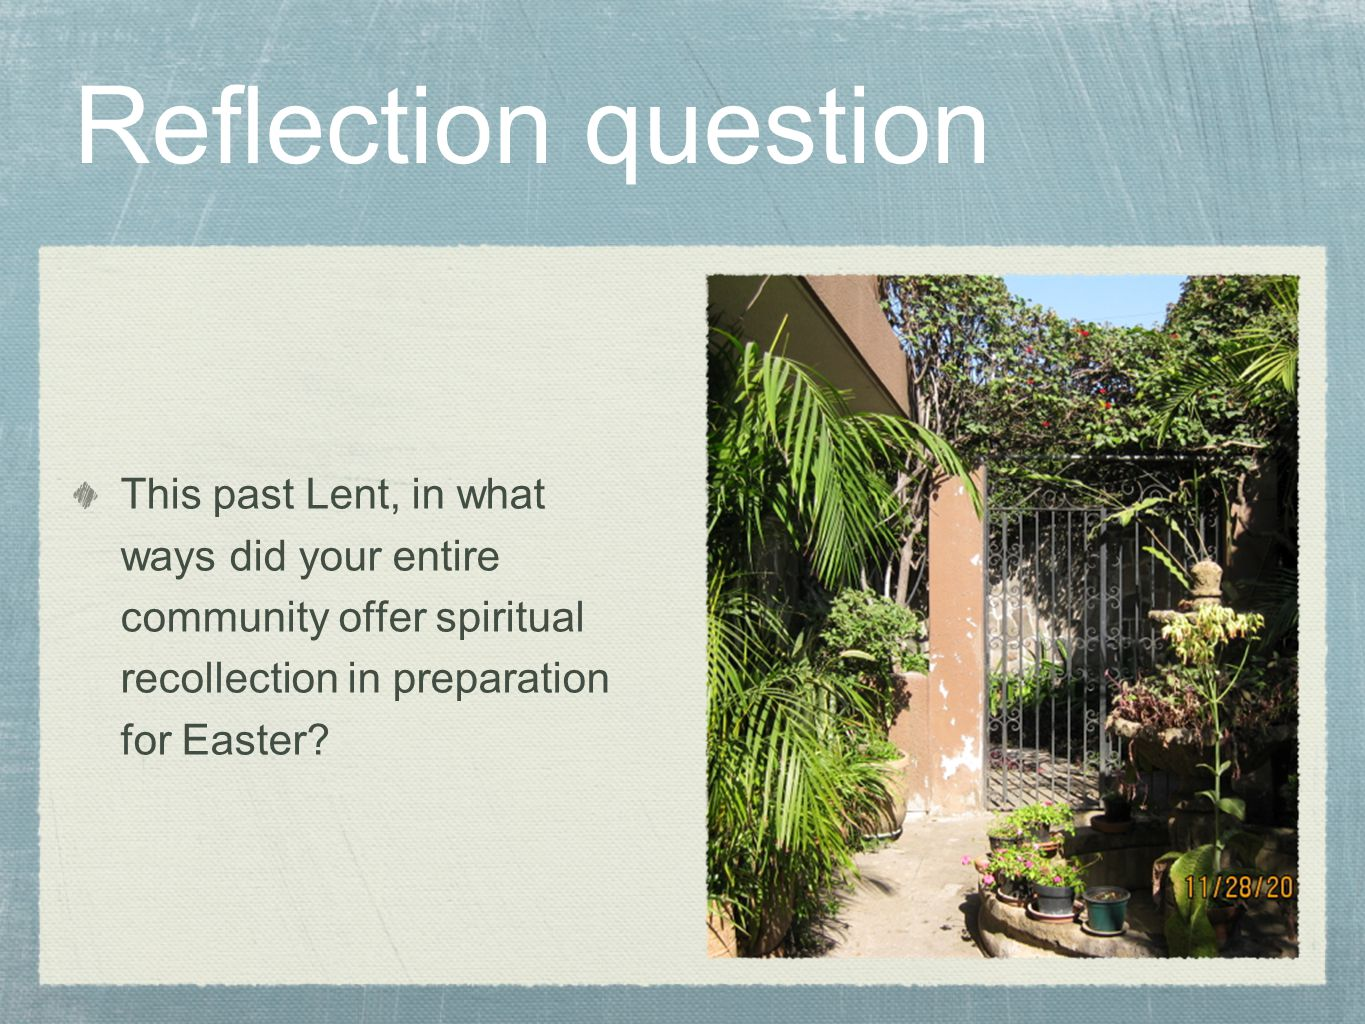 Reflection question This past Lent, in what ways did your entire community offer spiritual recollection in preparation for Easter